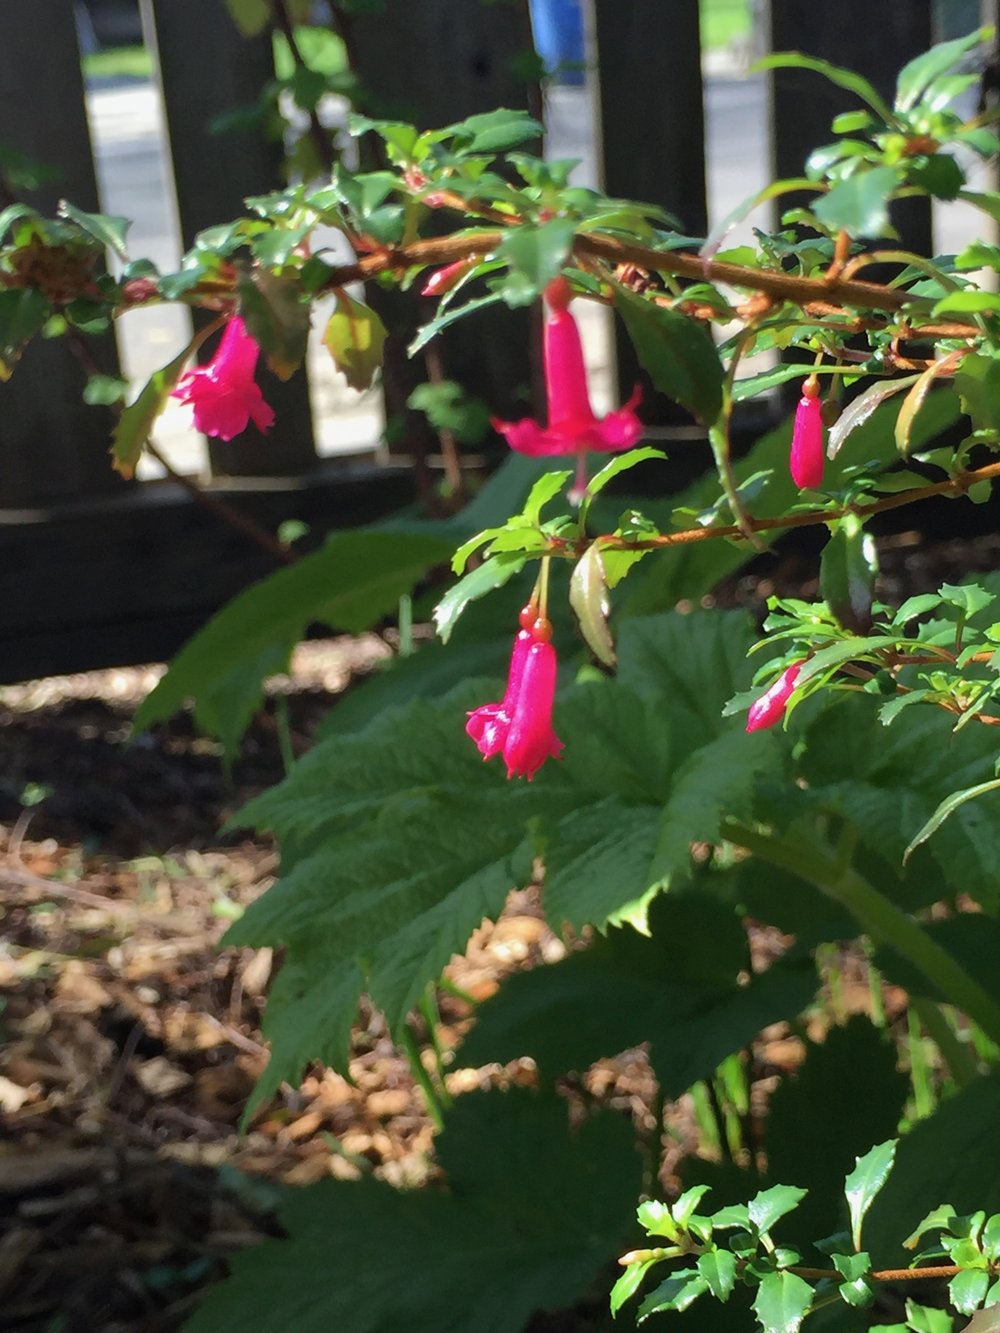 Fuchsia thymifolia -  or Thyme-leaved Fuchsia, this one hails from Mexico. The entire plant is compact and a beautiful green, and the flowers simply cover the plant. Bees love this. I have it in the woodland section of my garden, so it gets dappled shade and infrequent water.